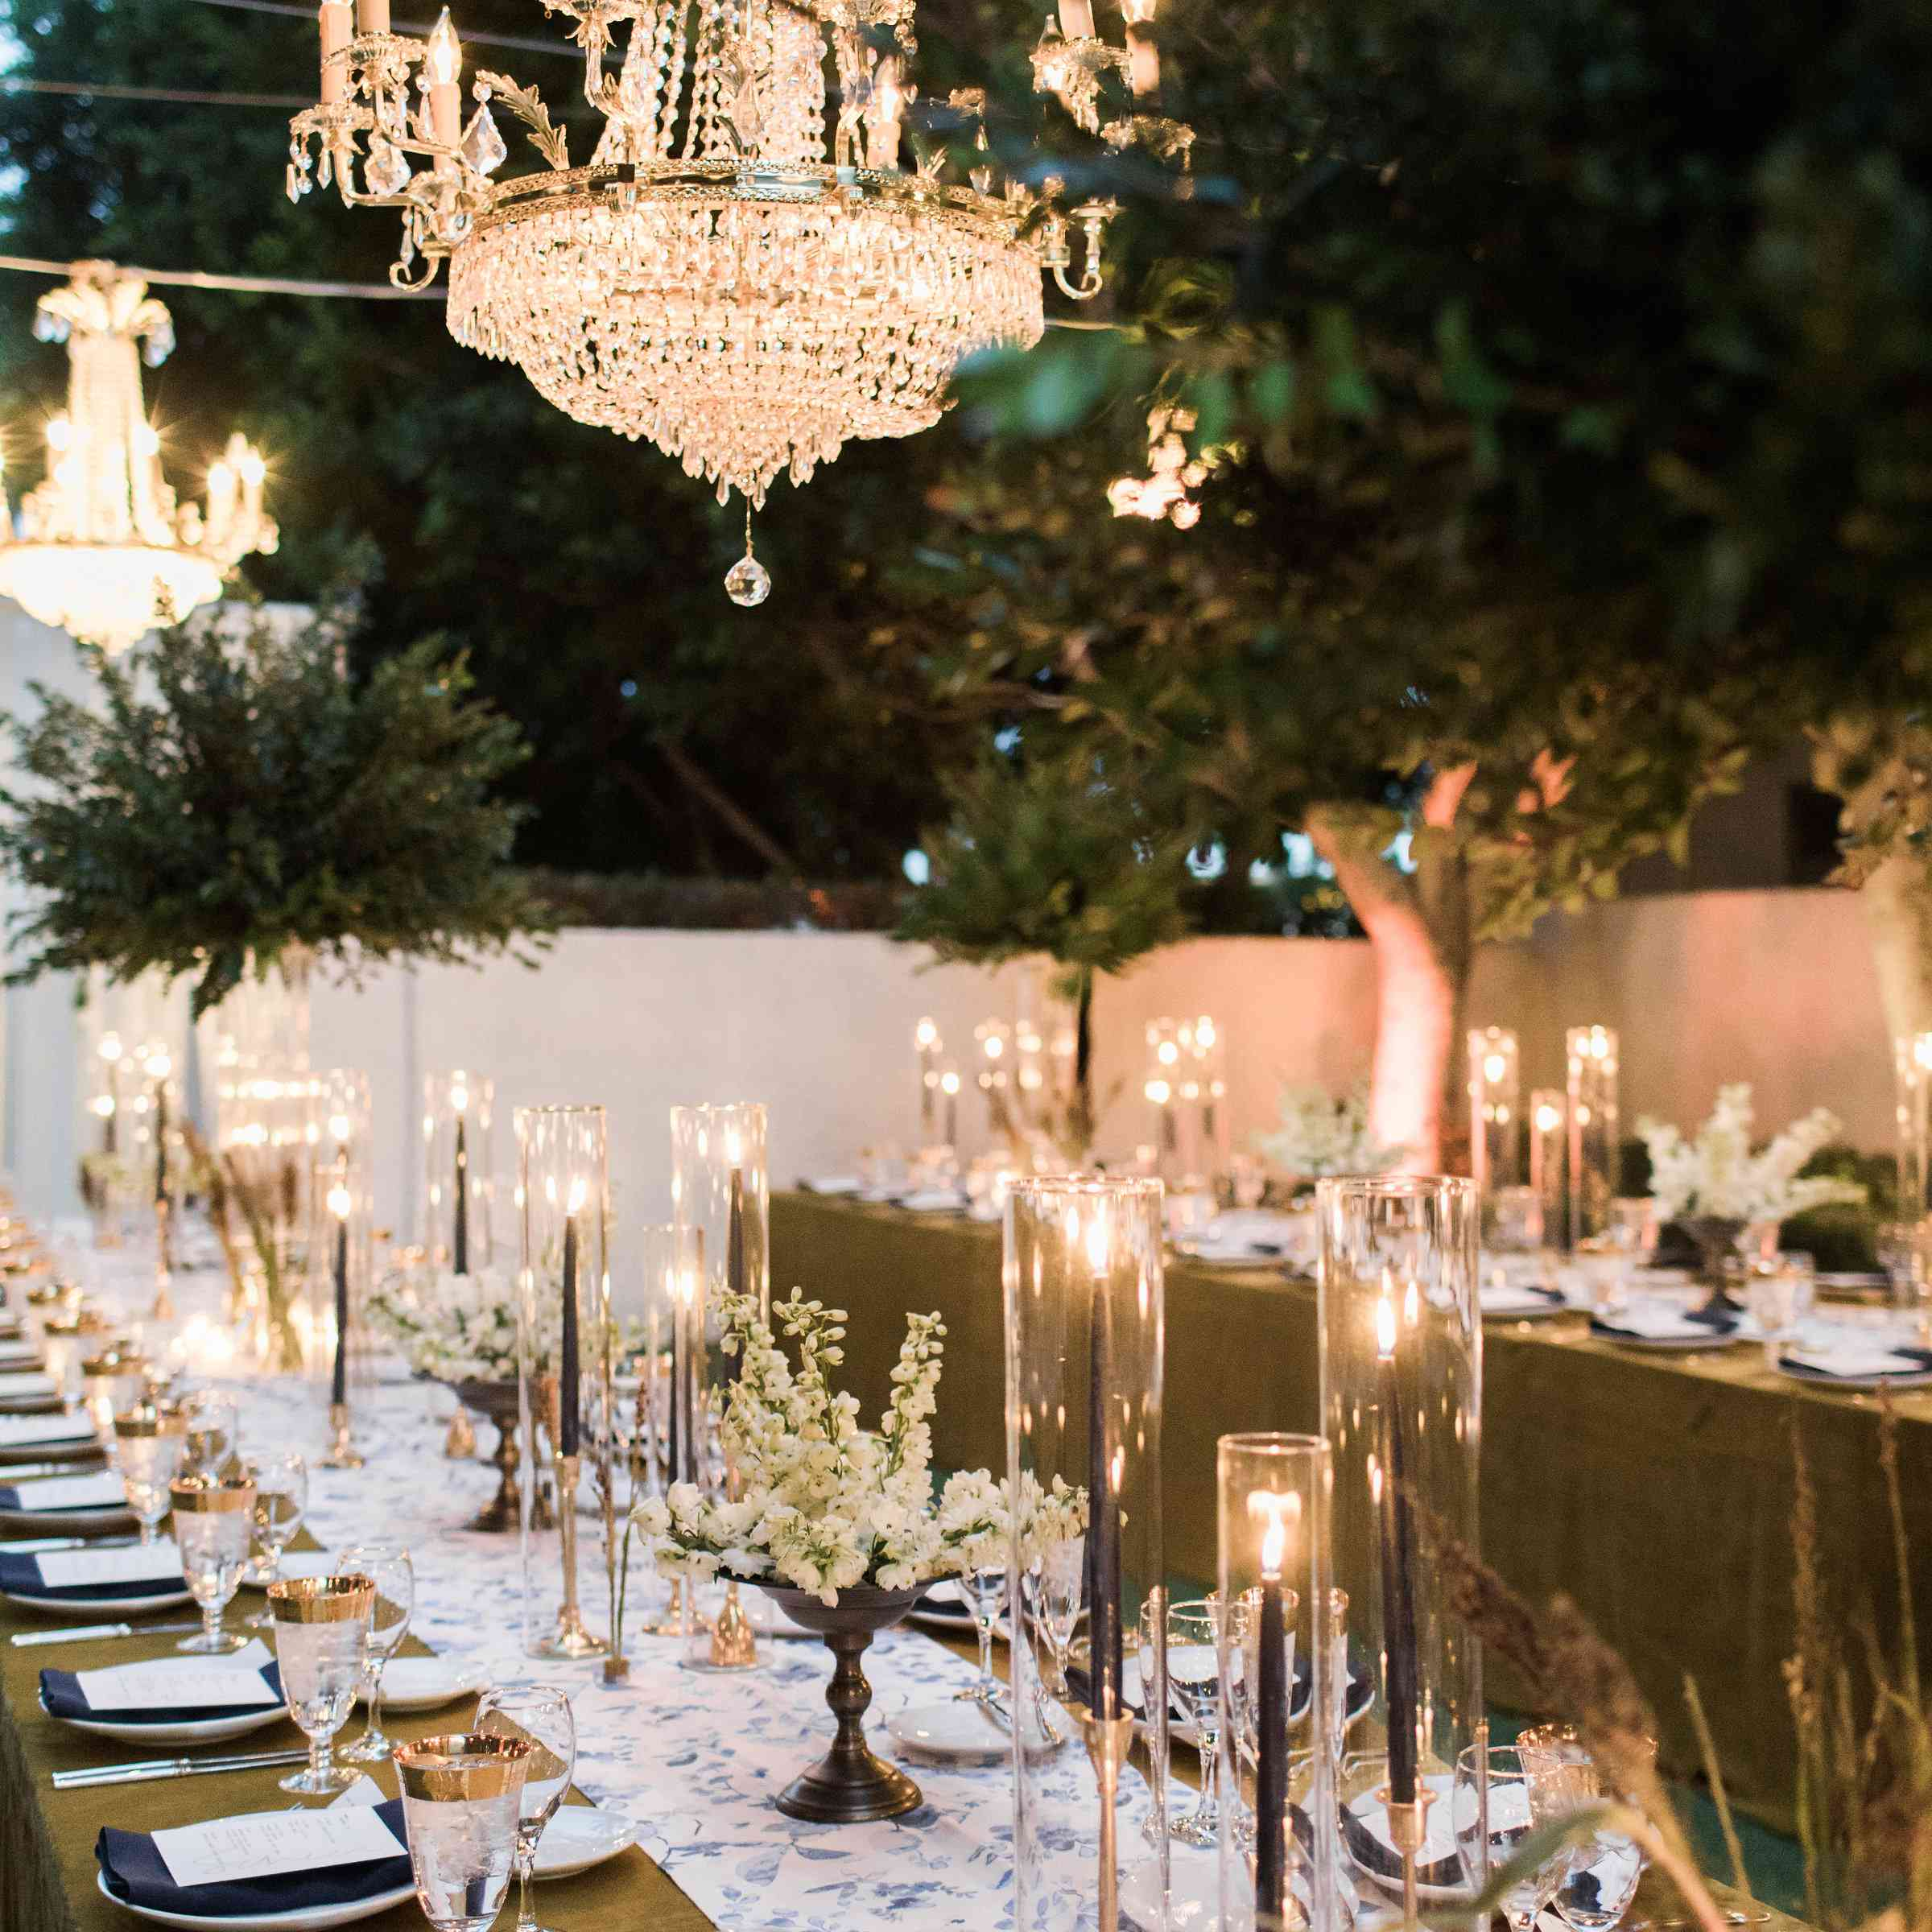 <p>outdoor reception under chandeliers gold and navy decor</p><br><br>